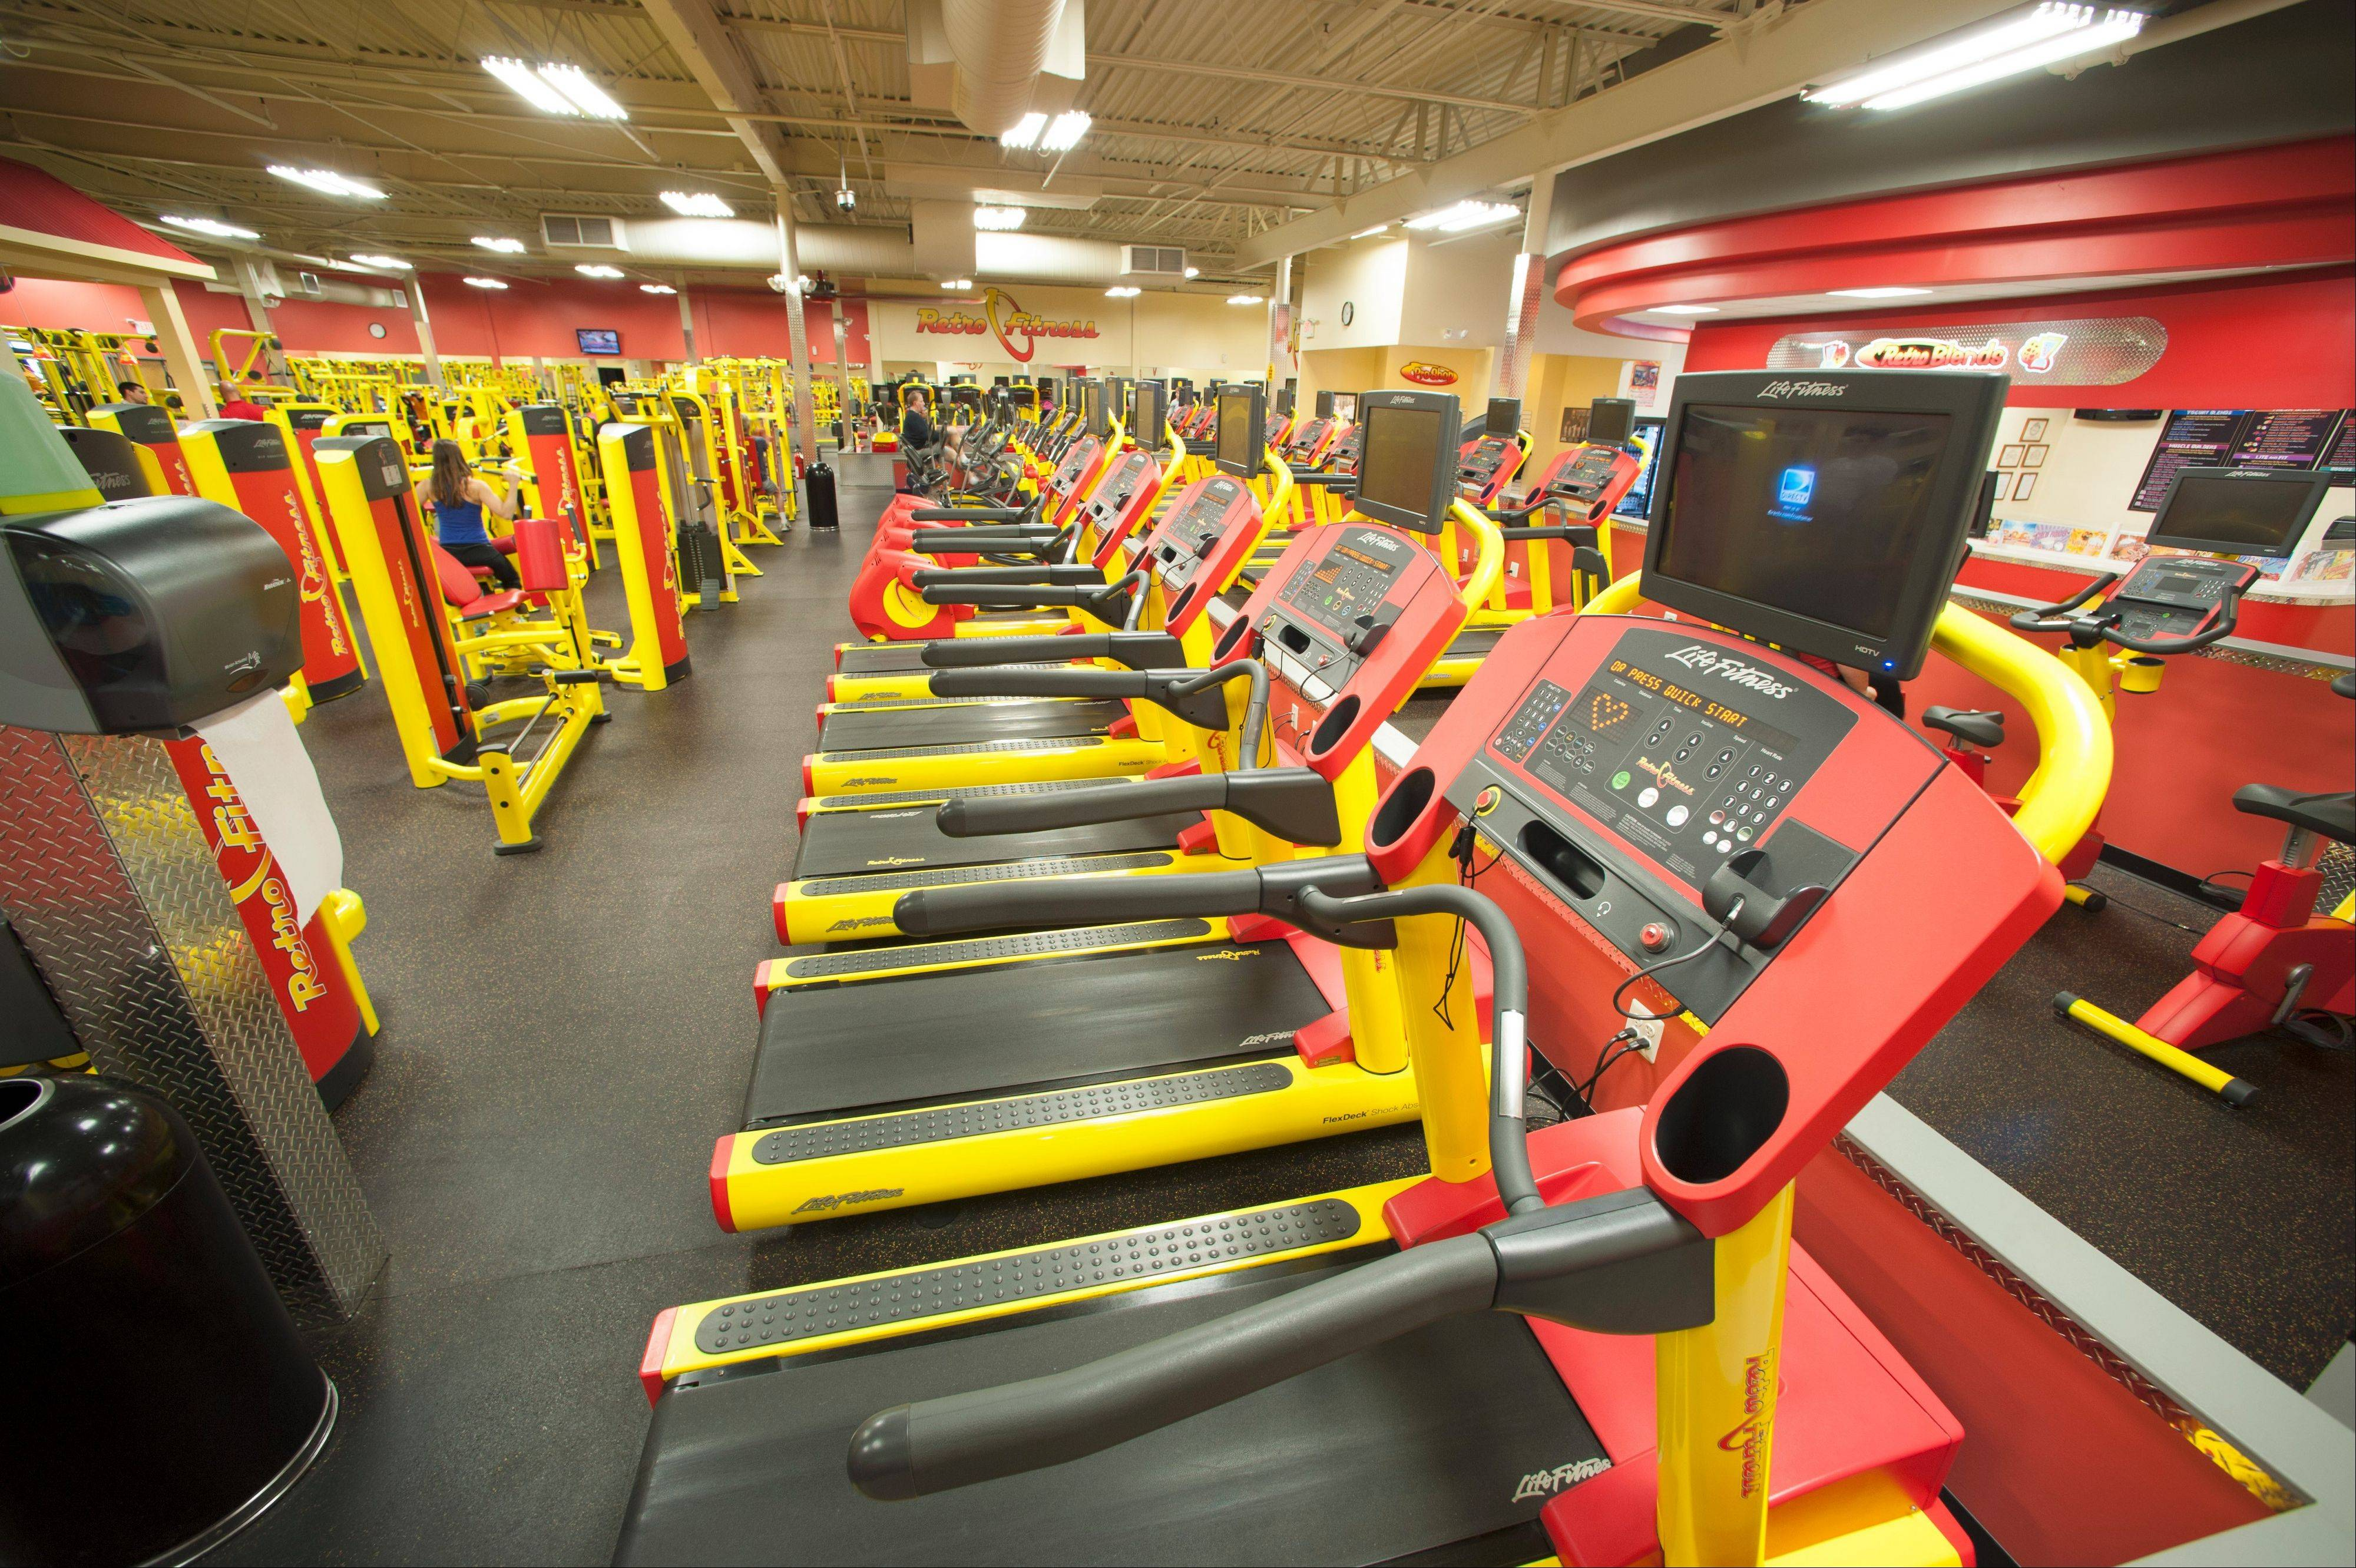 The Retro Fitness facility in Carol Stream will cover roughly 10,500 square feet.